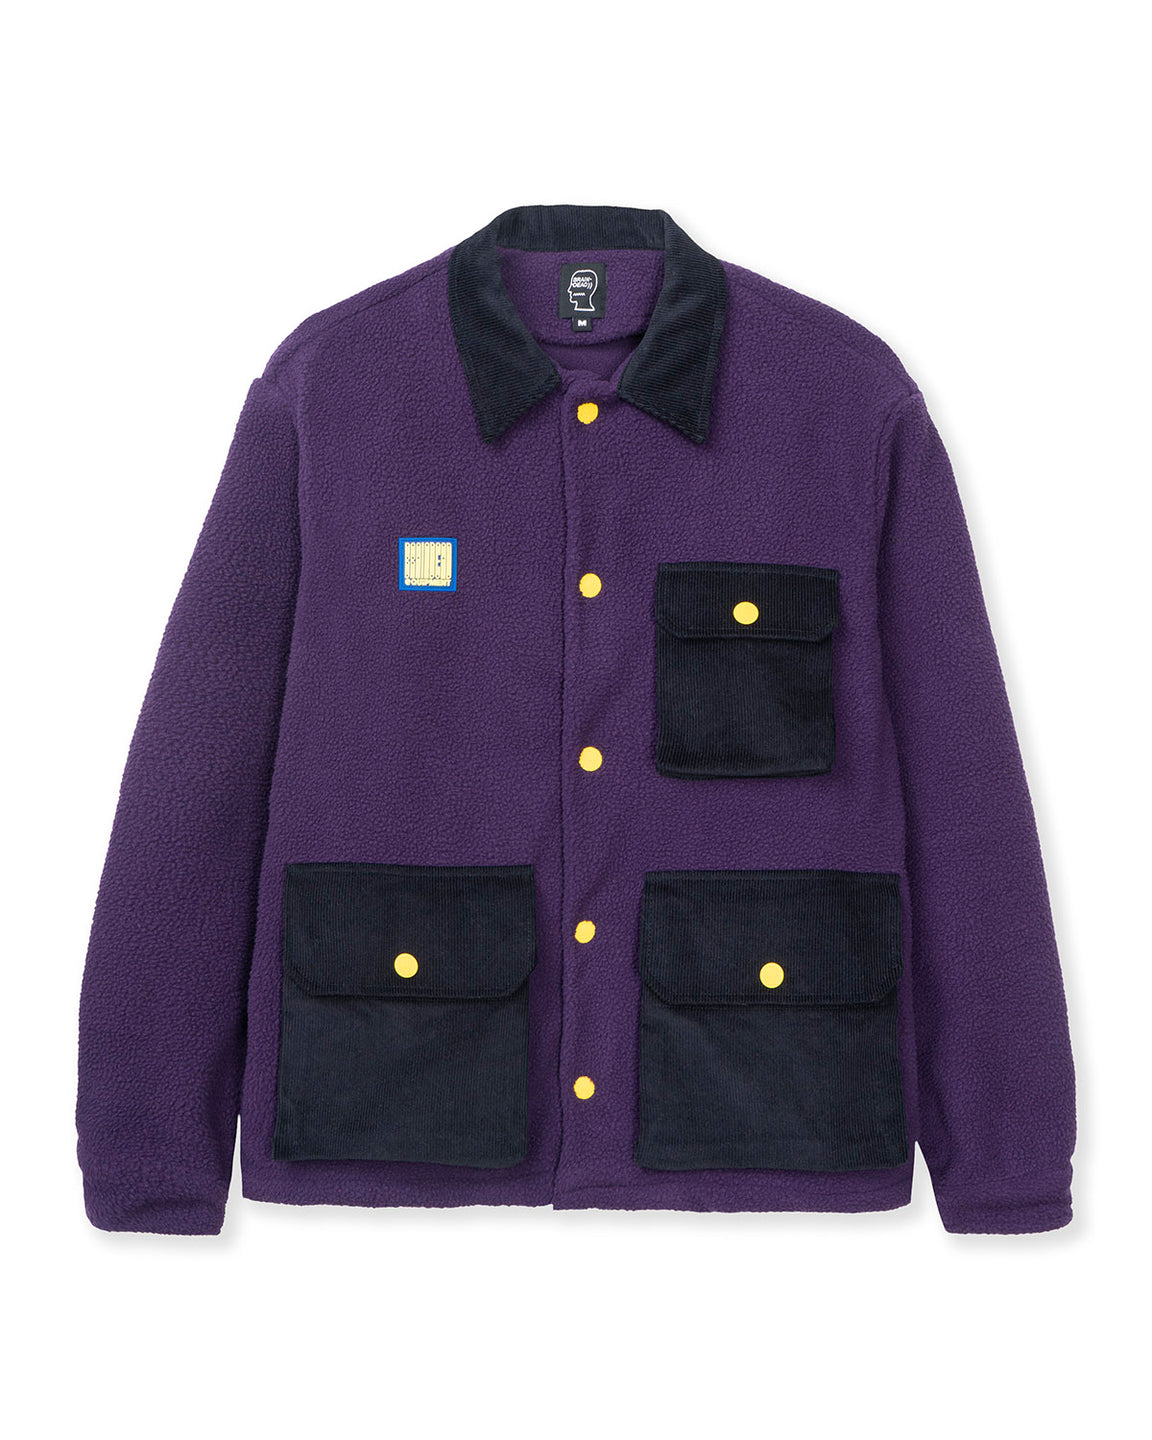 Sherpa Chore Coat - Purple/Navy